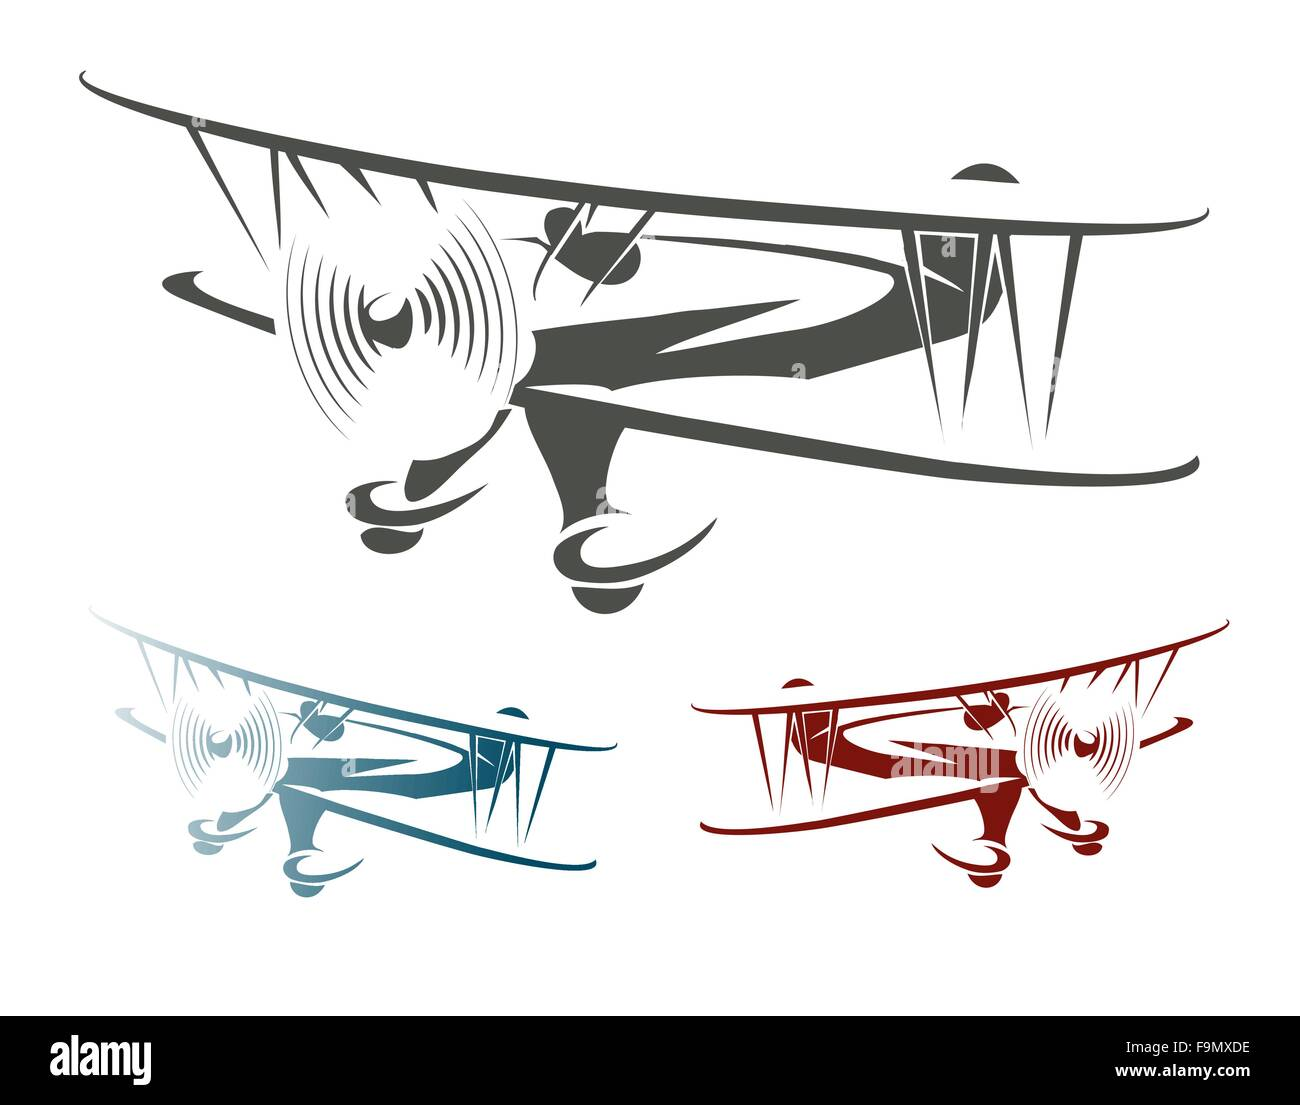 Flying Retro Airplane Emblem Set. Biplane in three color variations. Isolated on white. Stock Vector